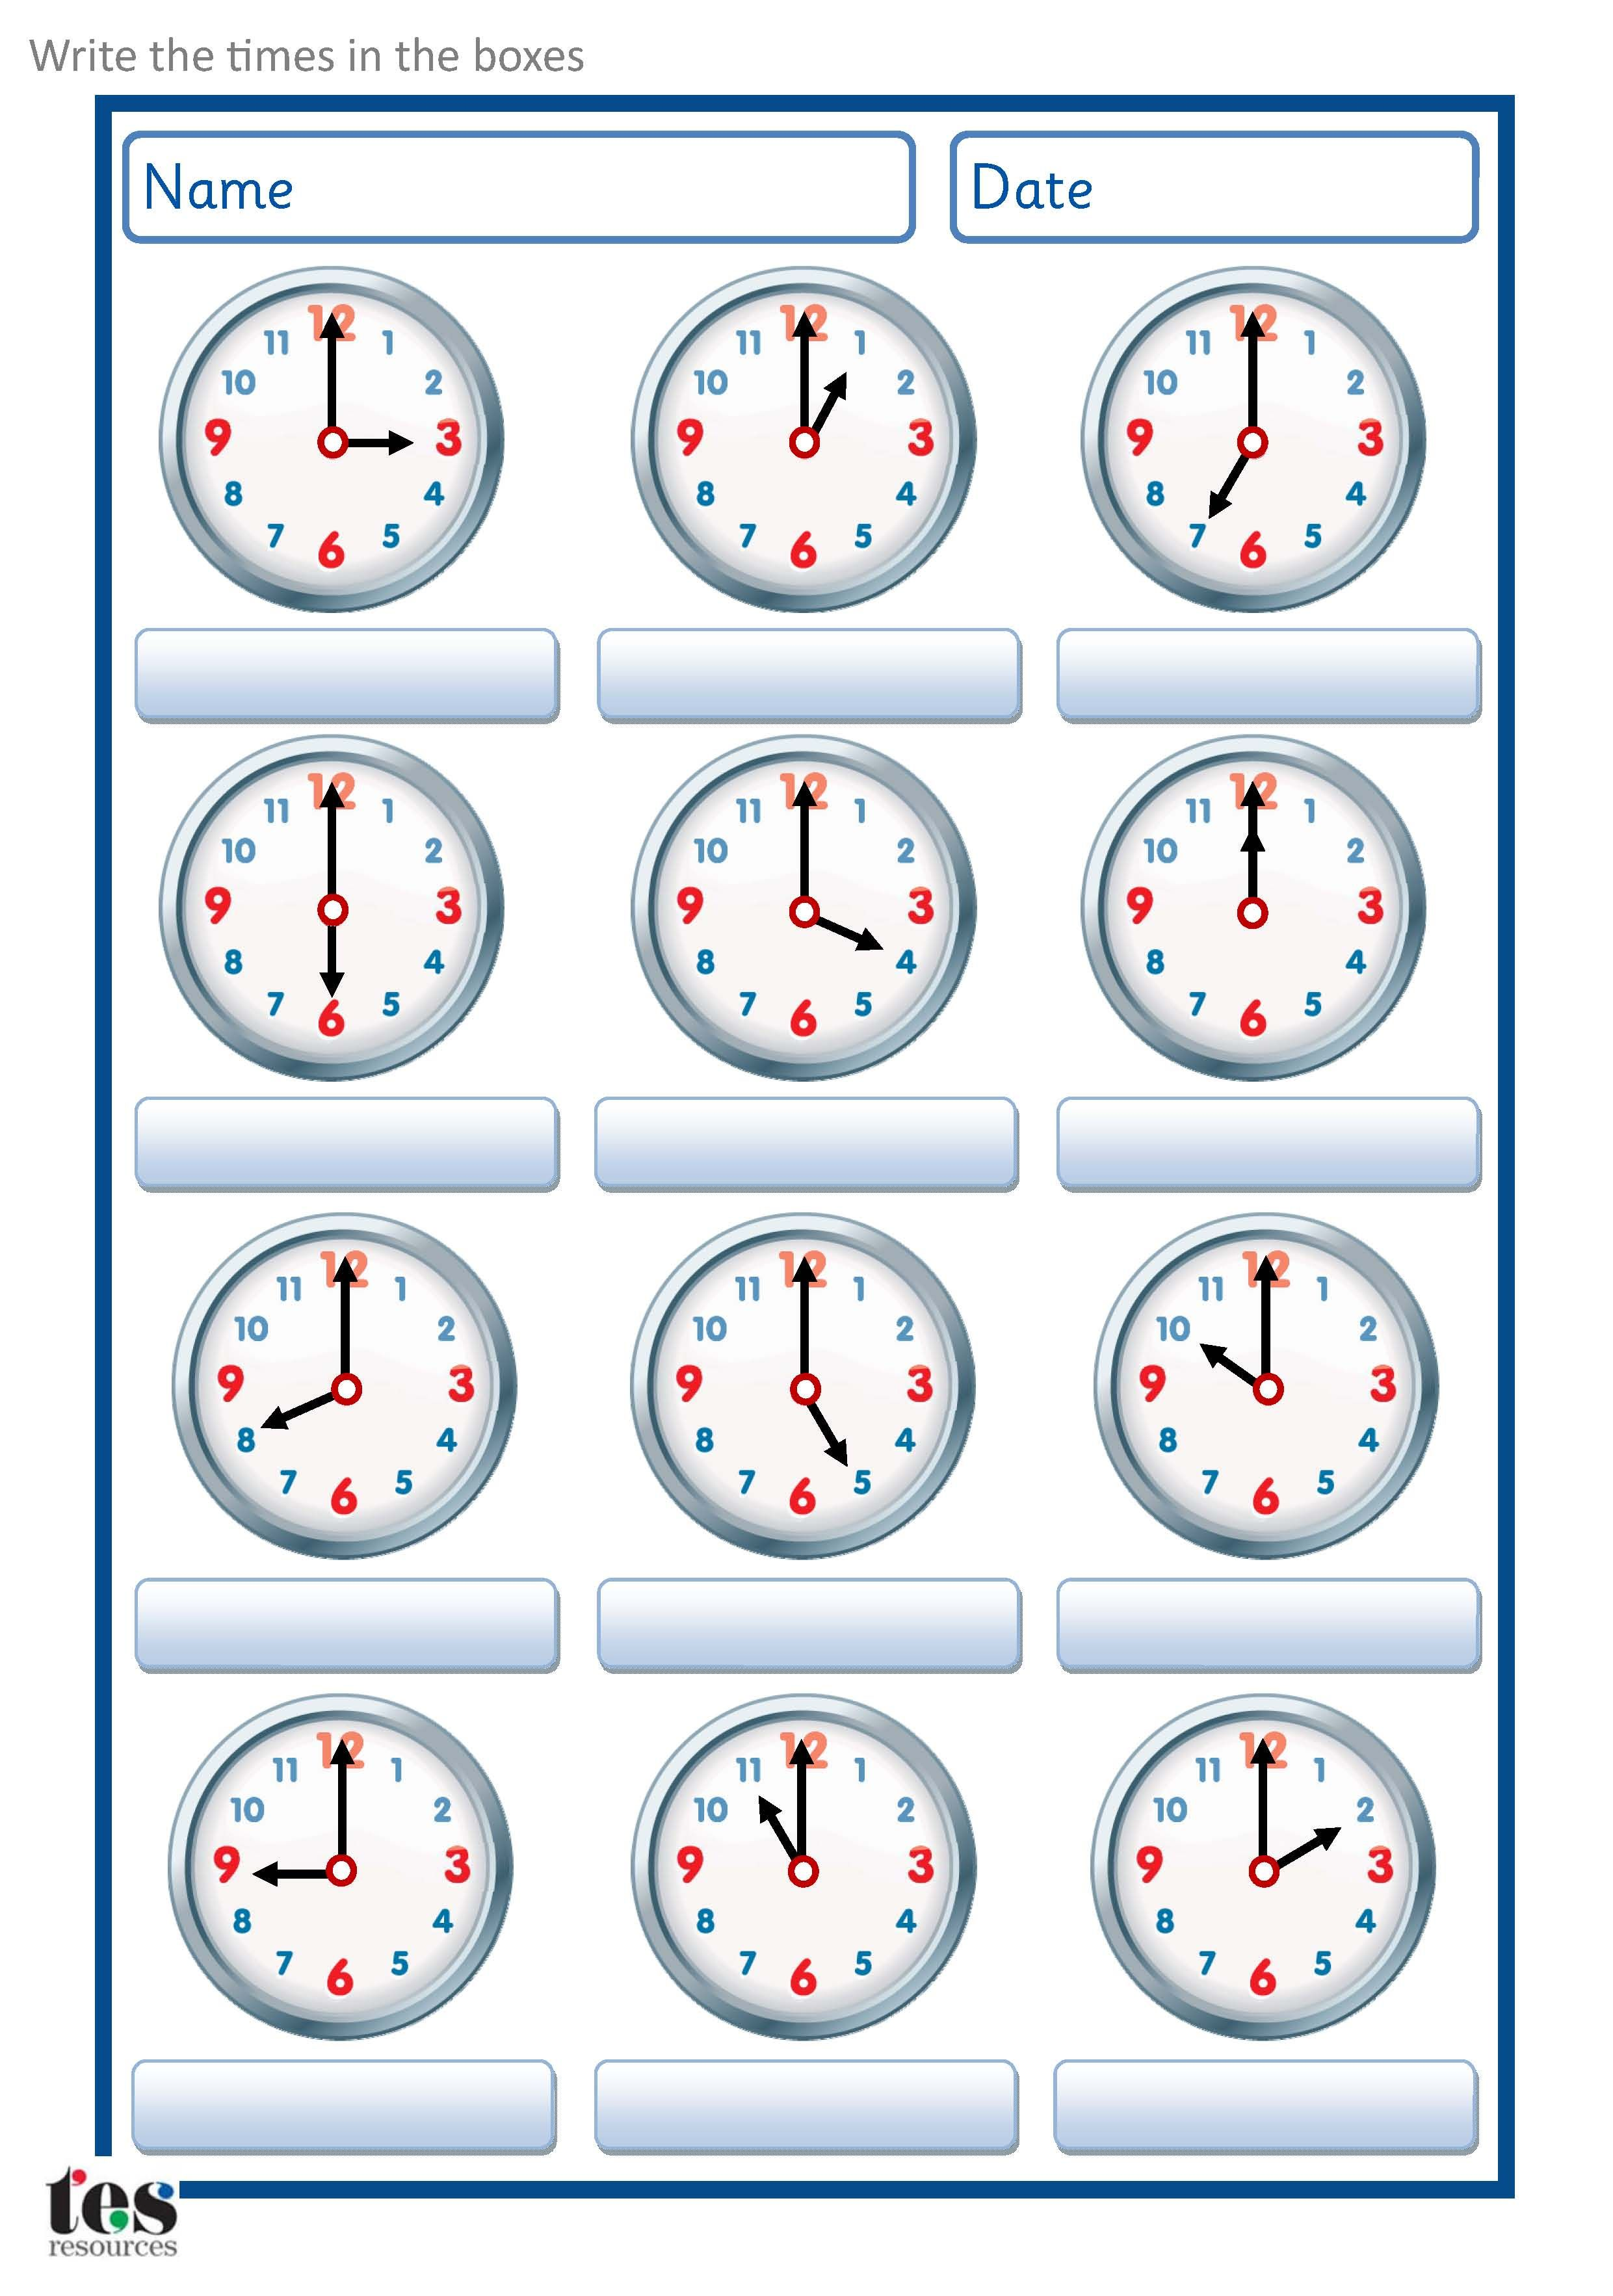 a set of worksheets to use when developing analogue clock skills a set of worksheets to use when developing analogue clock skills set contains 2 sheets